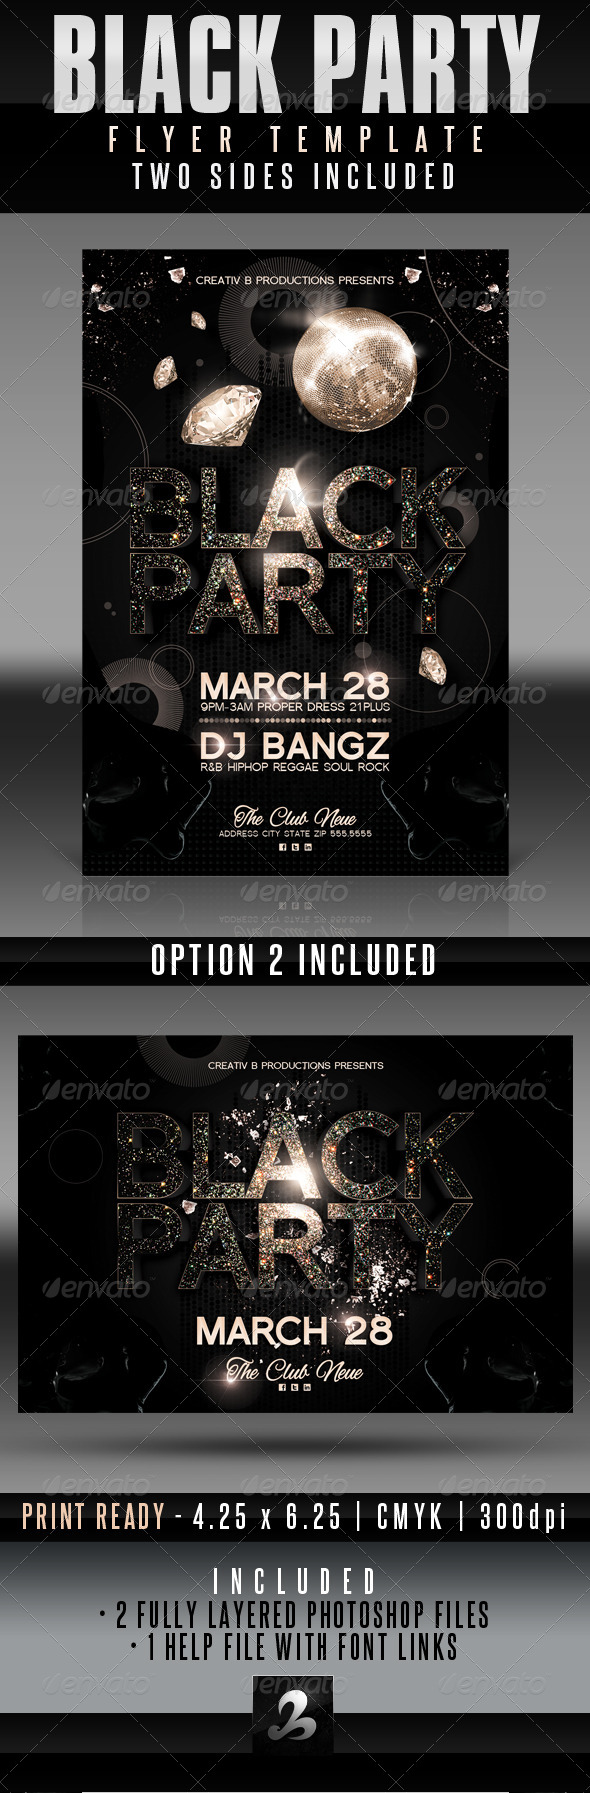 Black Party Flyer Templates - Clubs & Parties Events